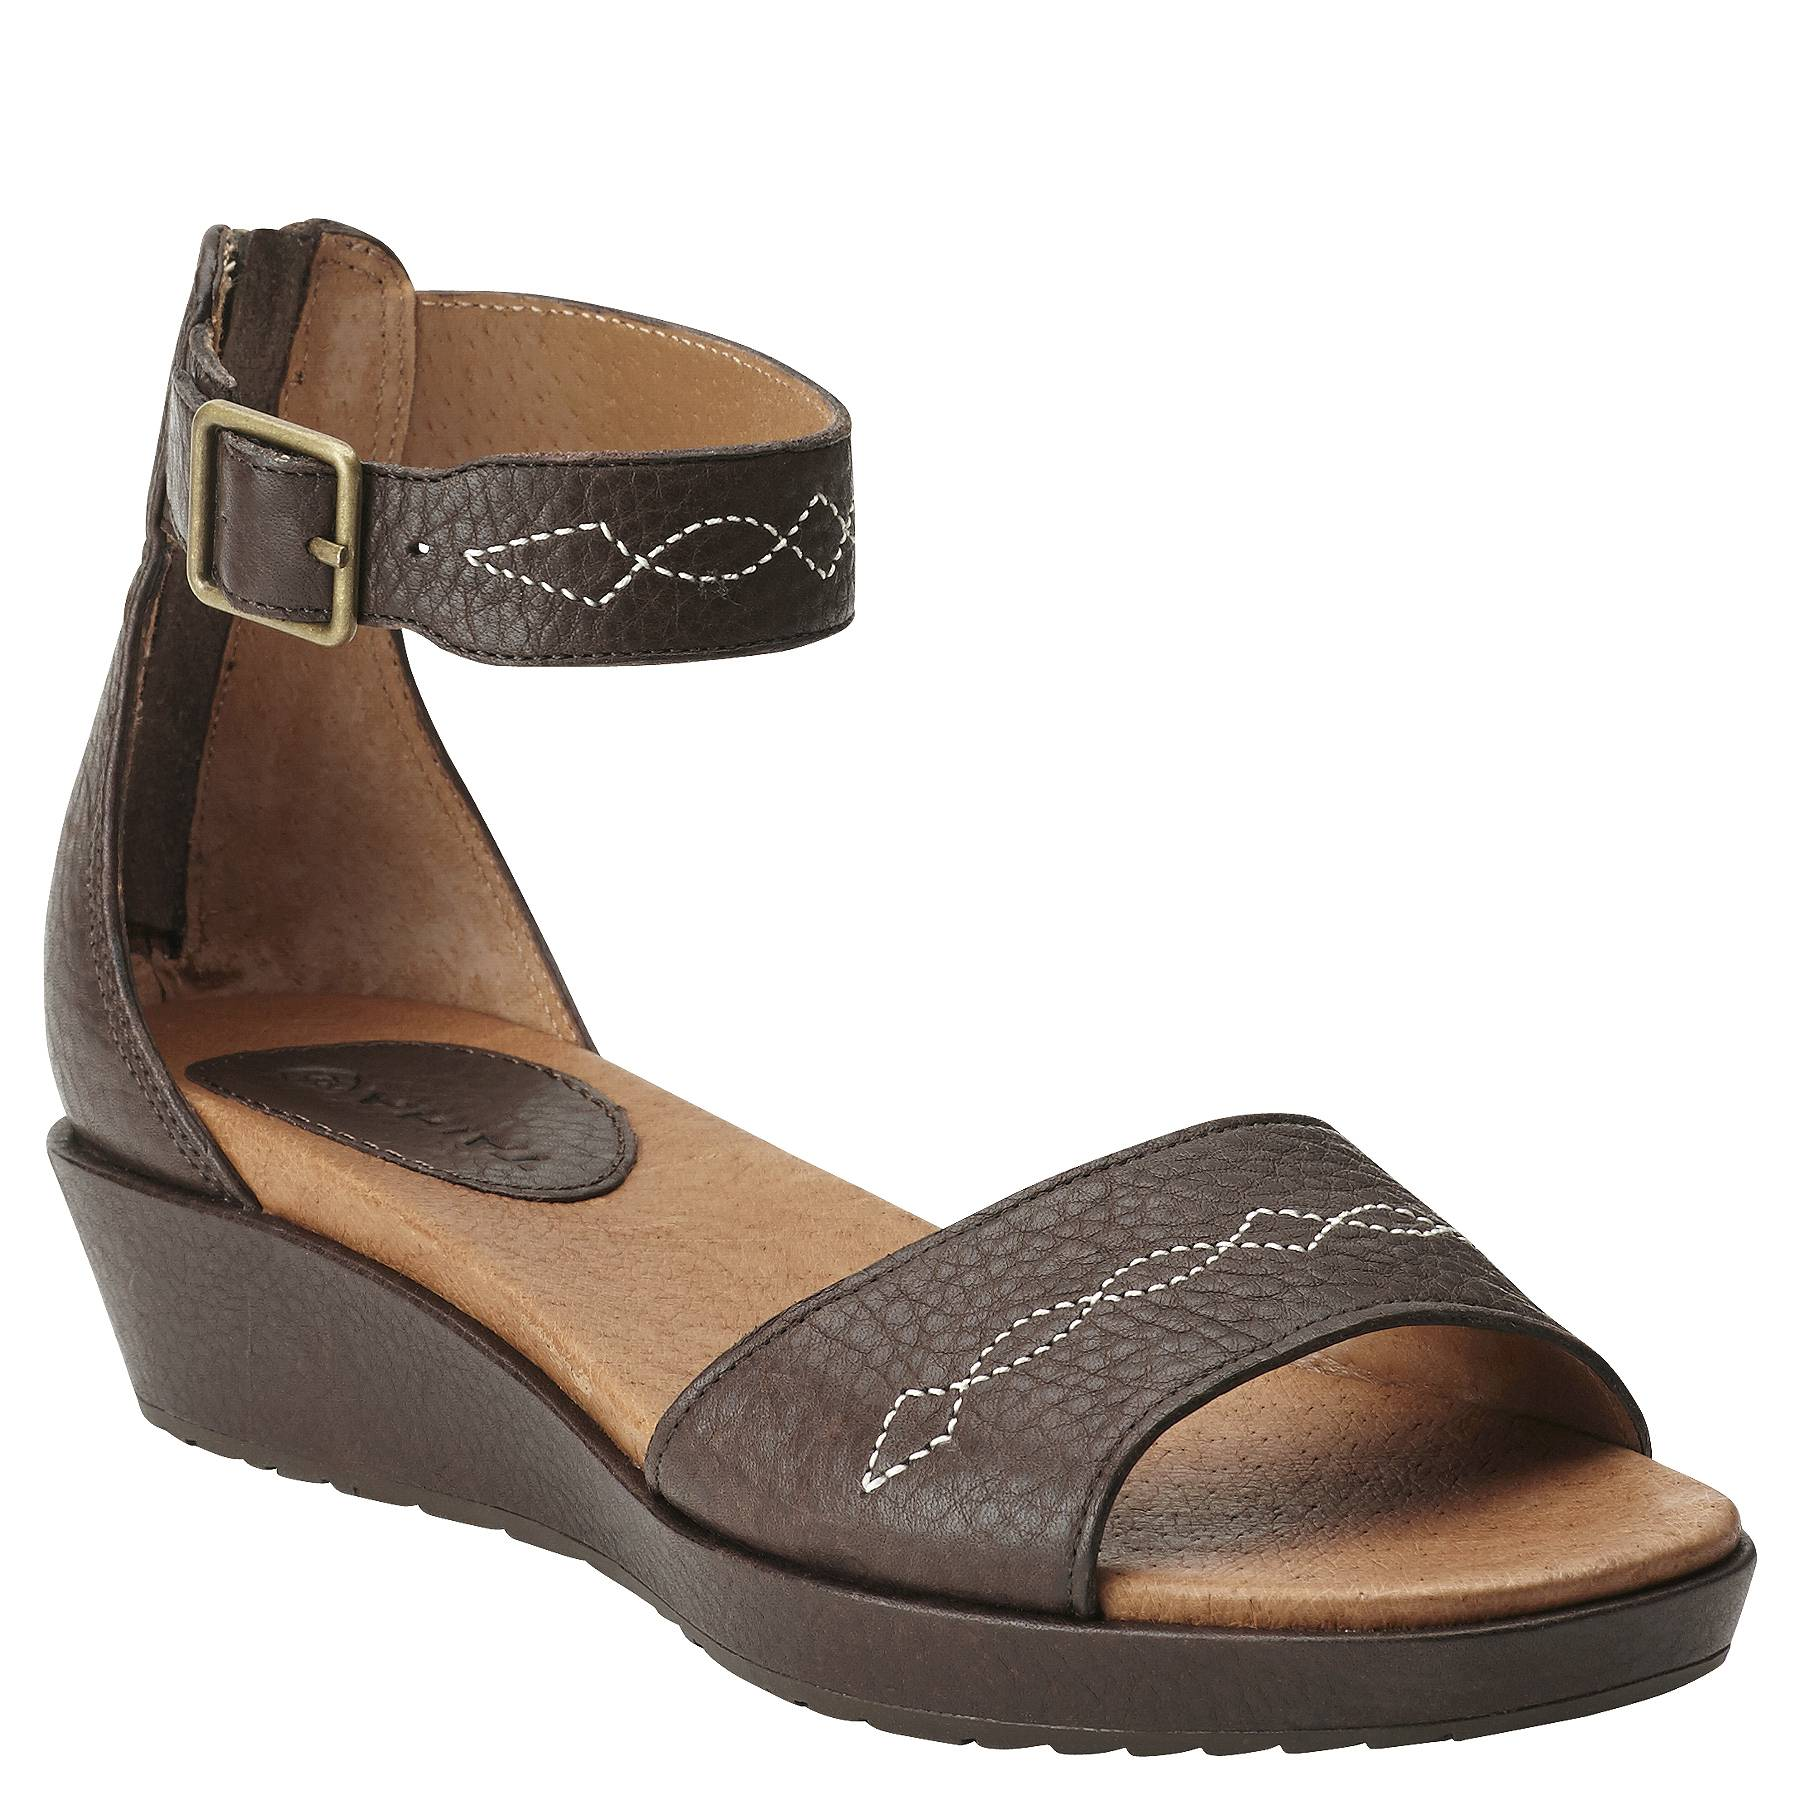 Women's Lisa Sandal